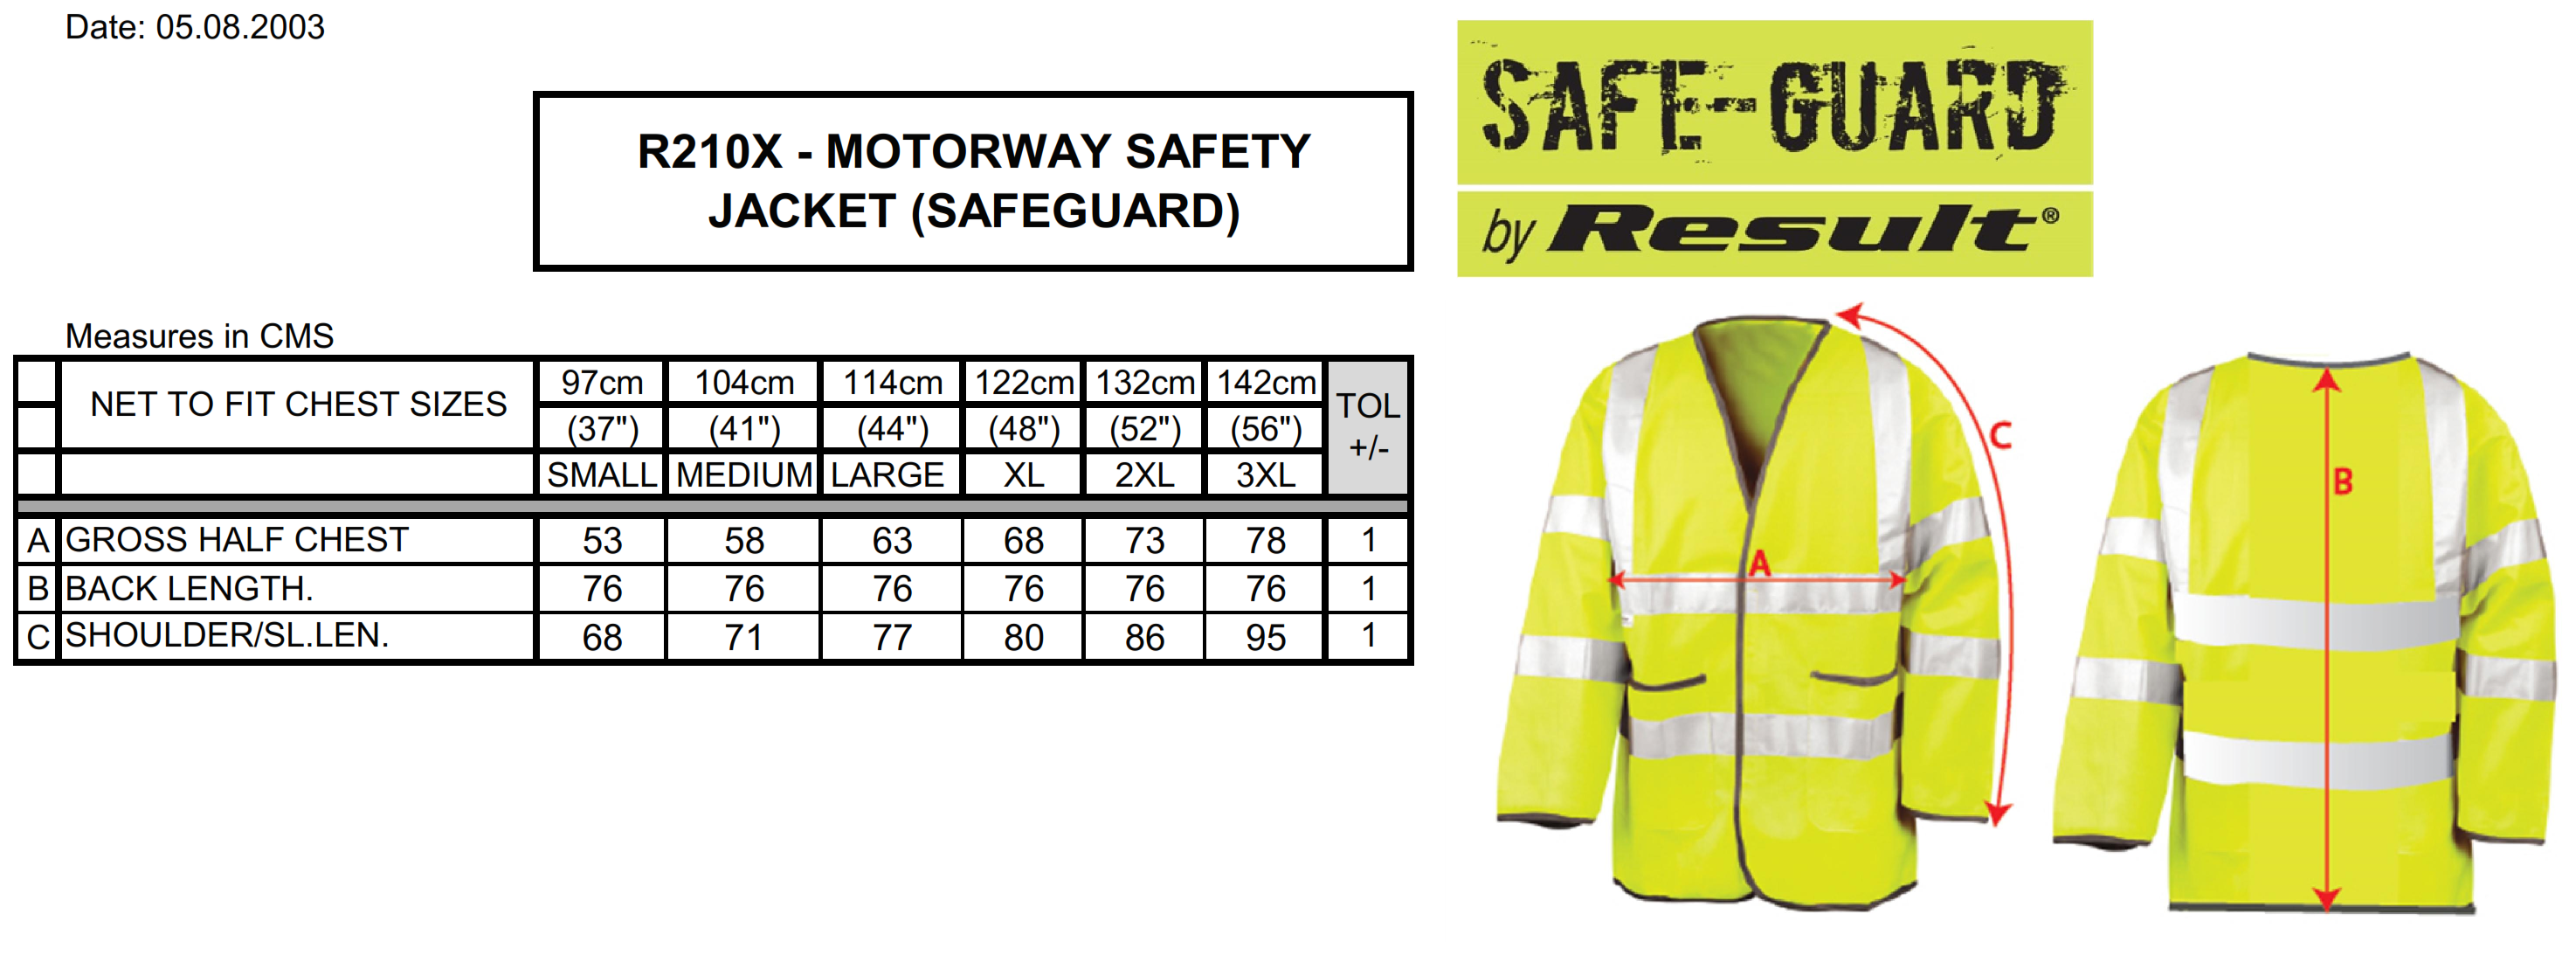 Result: Light-Weight Safety Jacket R210